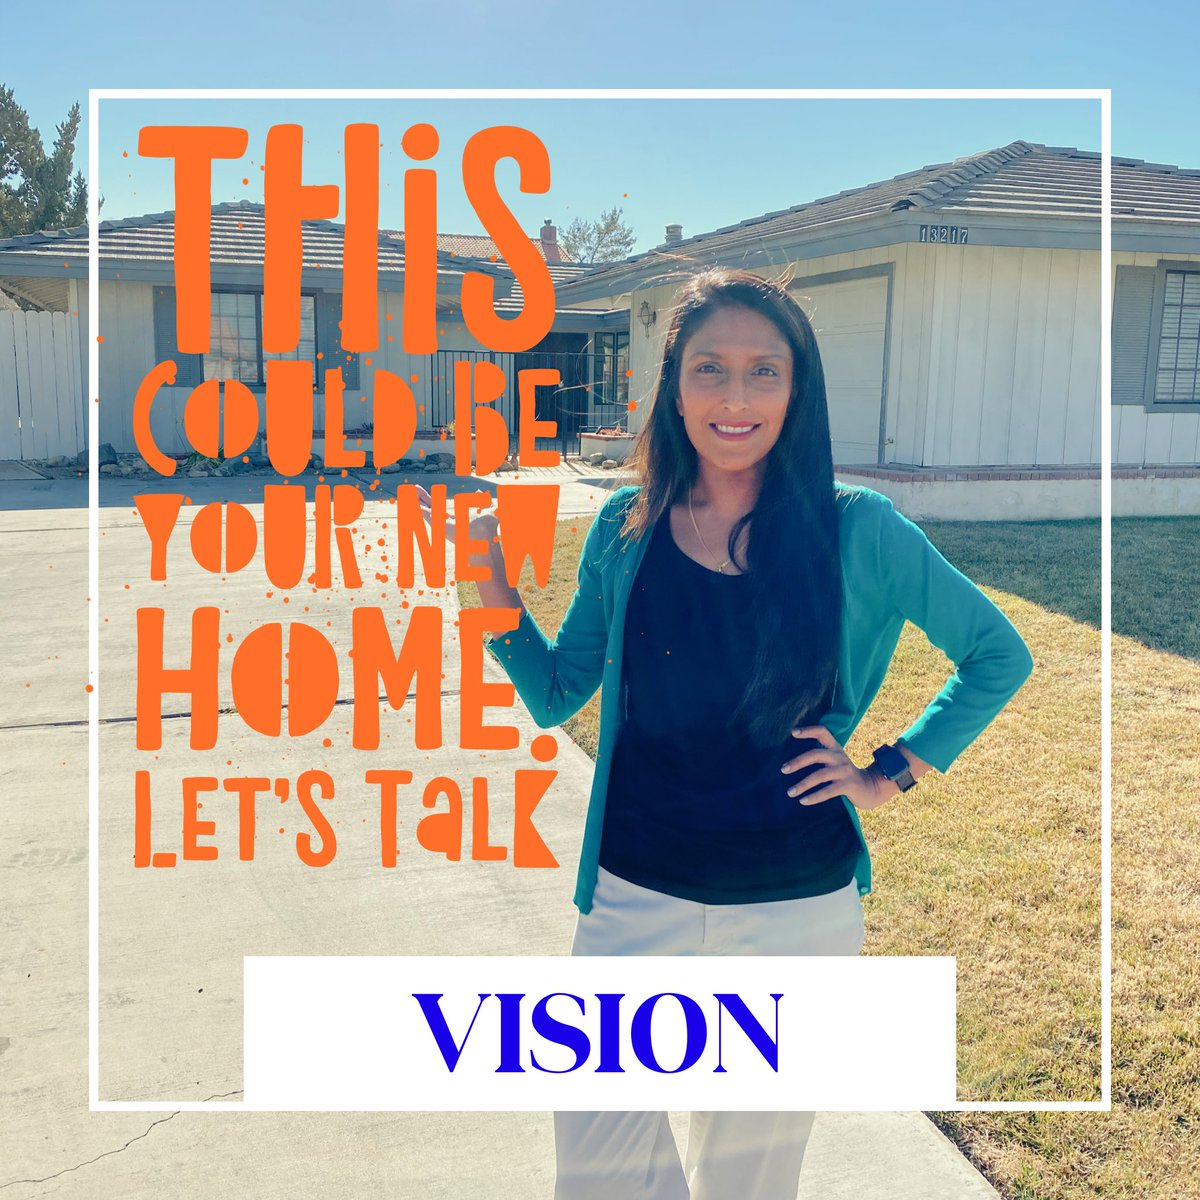 The vision your have laid out for your next home matters more than you realize. This will be one of the biggest investments of your life. Don't settle for a home that doesn't light you up inside. May your cup overflow with joy. DRE# 02105482 #soldbychanel #sunday #realtorlife